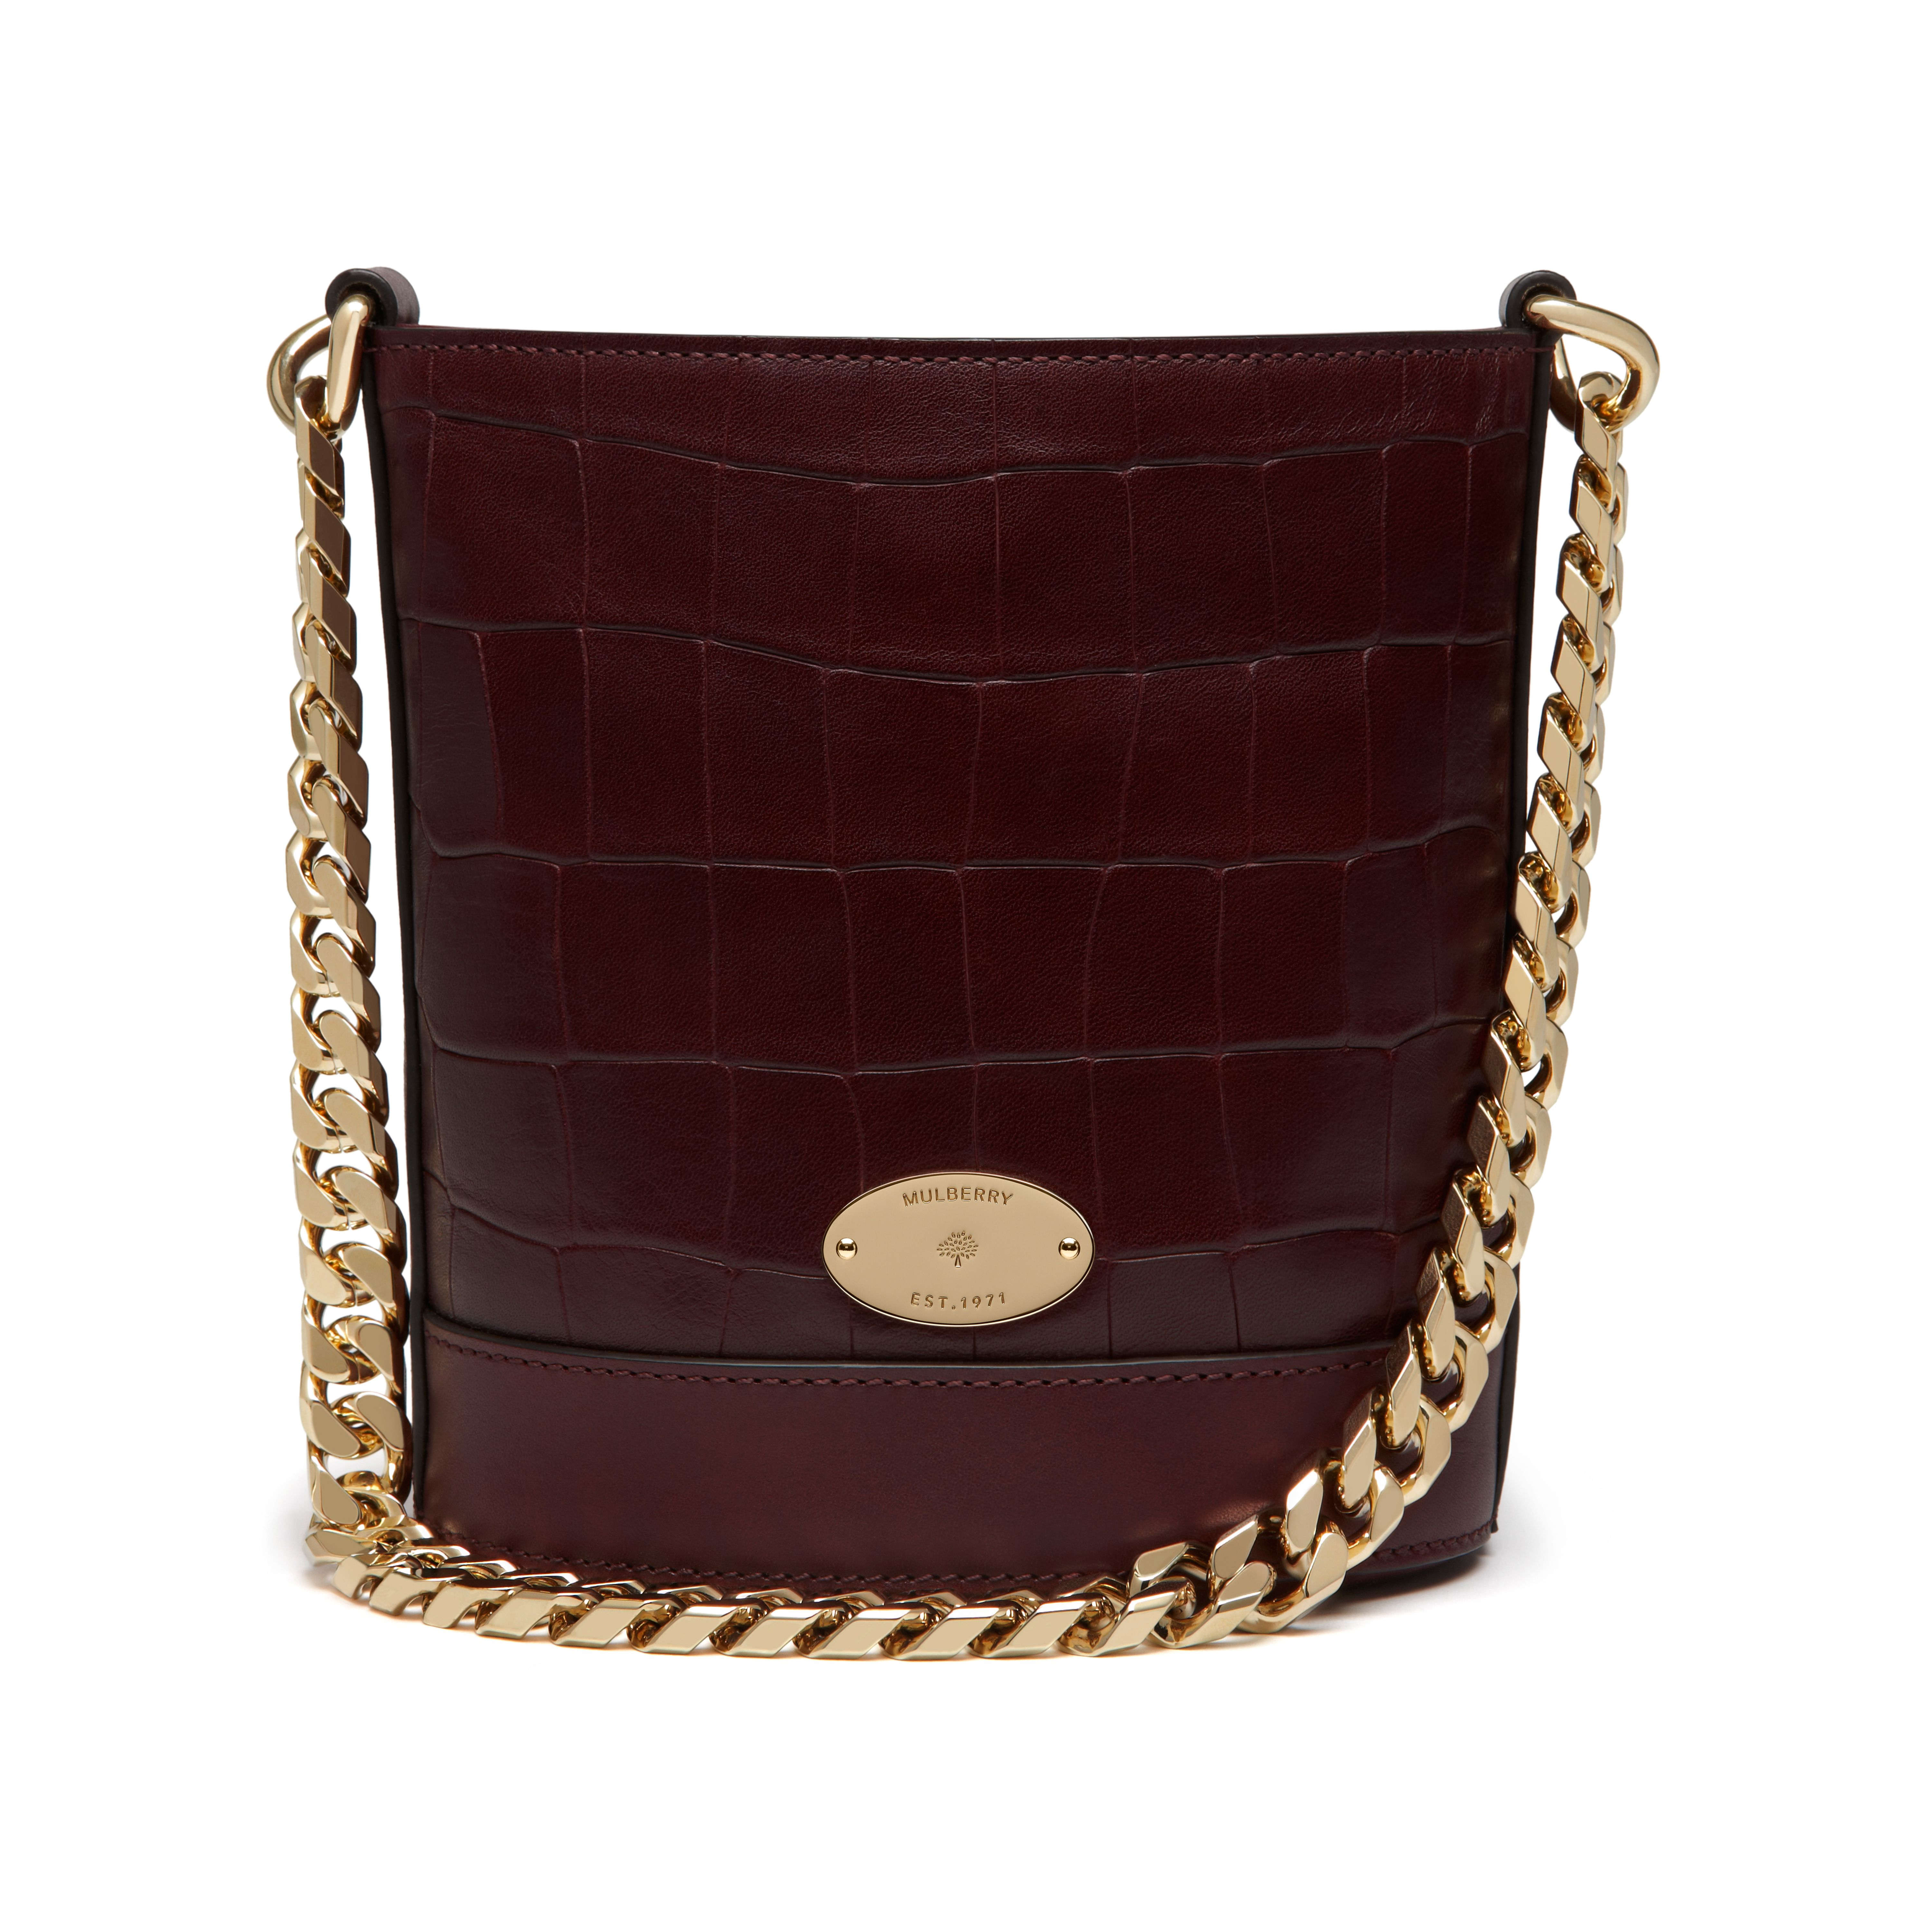 31b1514430 Mulberry Mini Jamie In Red Lyst. New Edition 2016 Mulberry Handbags  Collection Outlet Uk Kite Pouch Oxblood Deep Embossed Croc Print